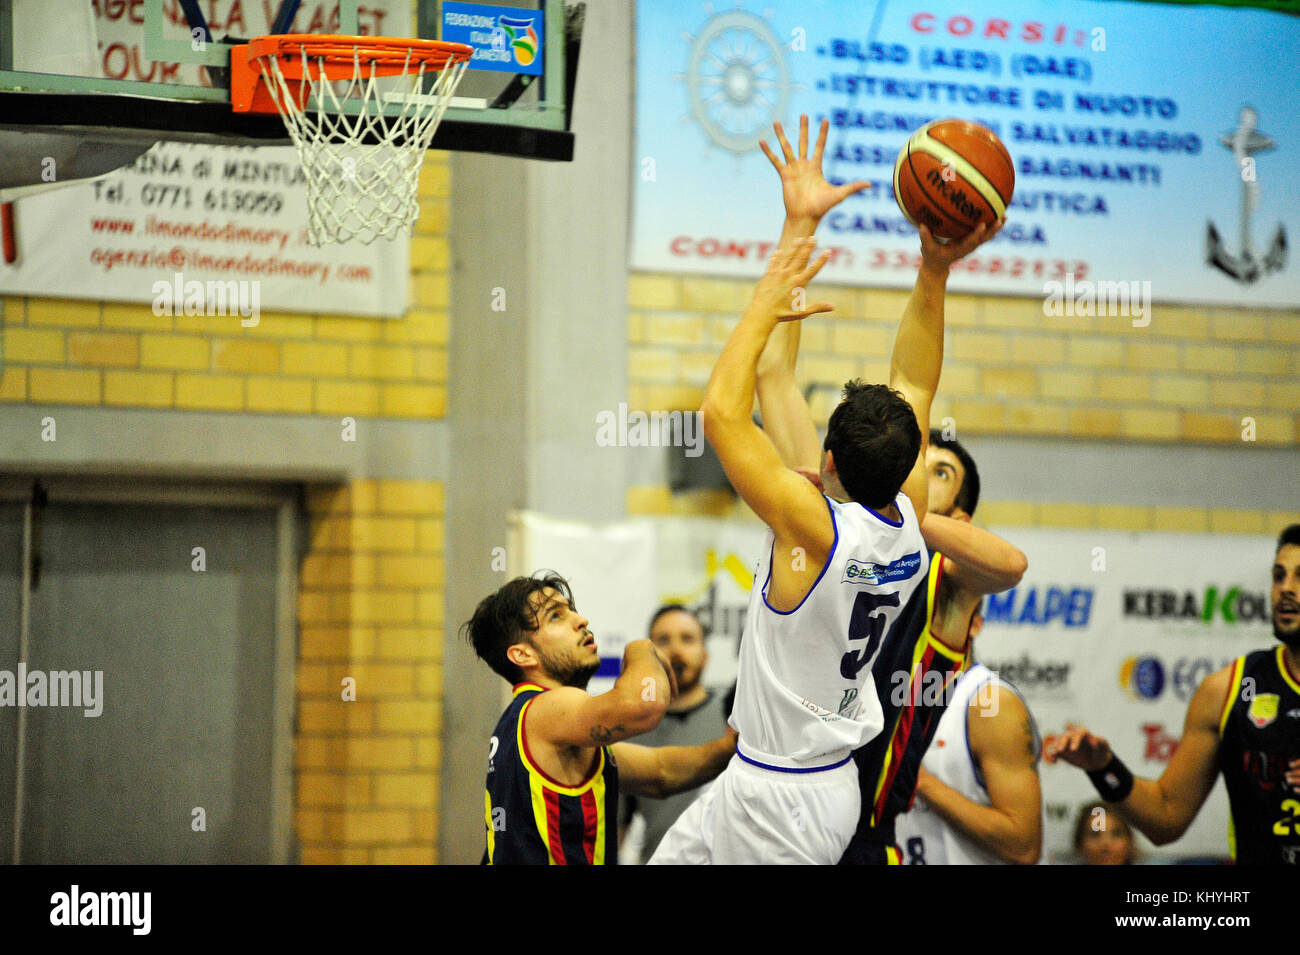 Minturno, Italy. 19th Nov, 2017. Dante Richotti #5 of Basket Scauri trying to score basket during the first half Stock Photo